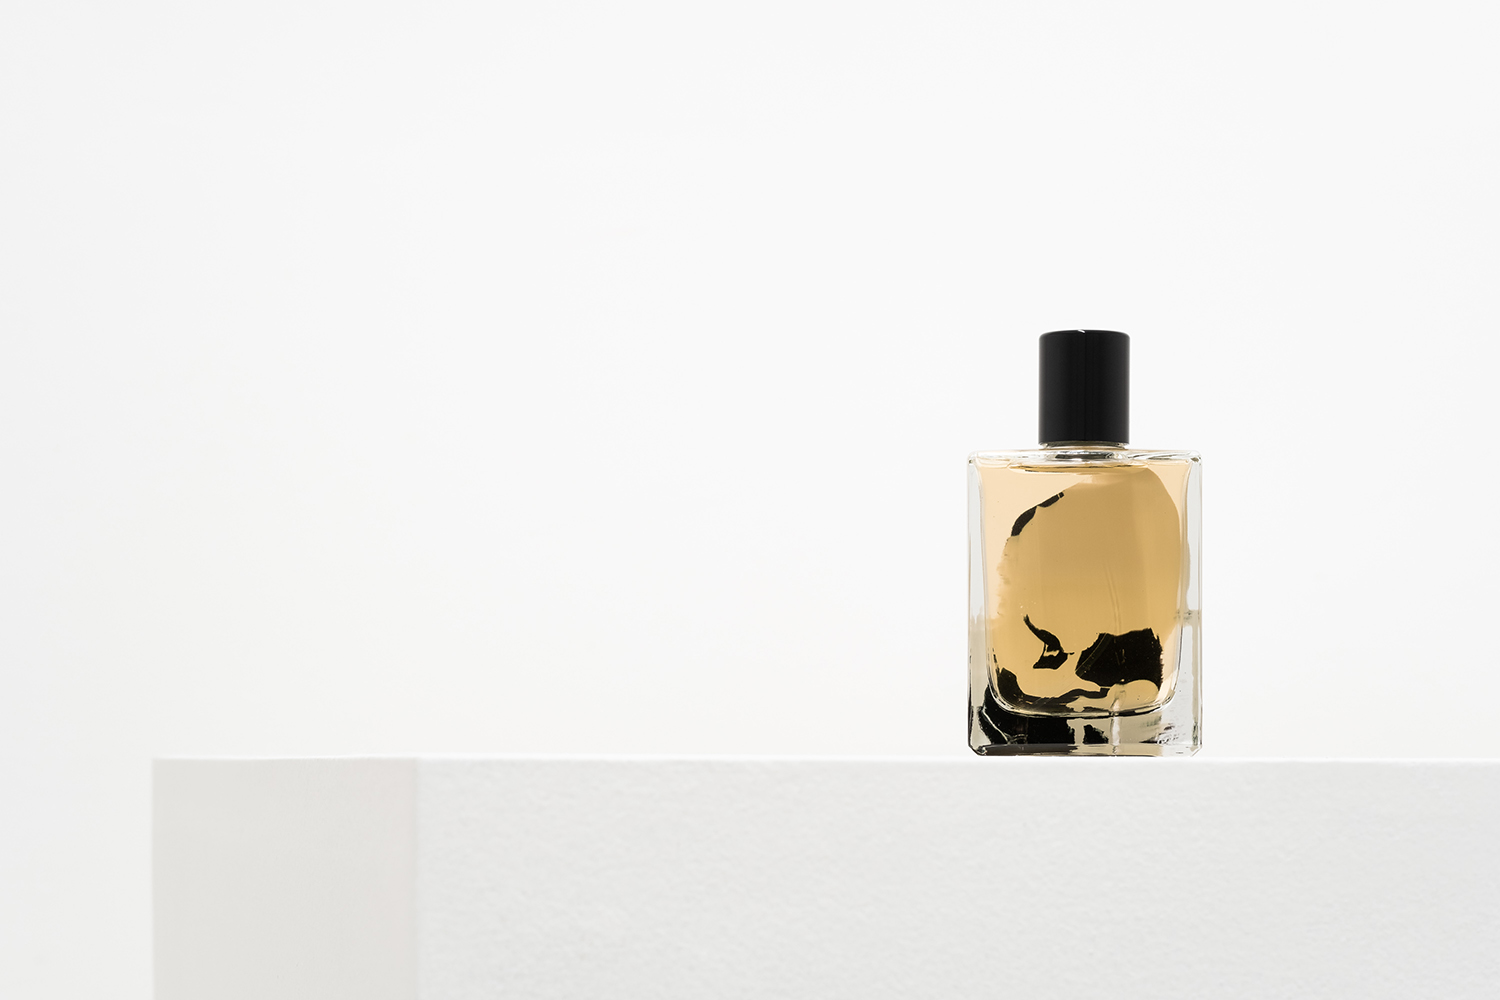 Talk To Her Fragrance By Folie A Plusieurs and David Apel Le Cinema Olfactif Film Series